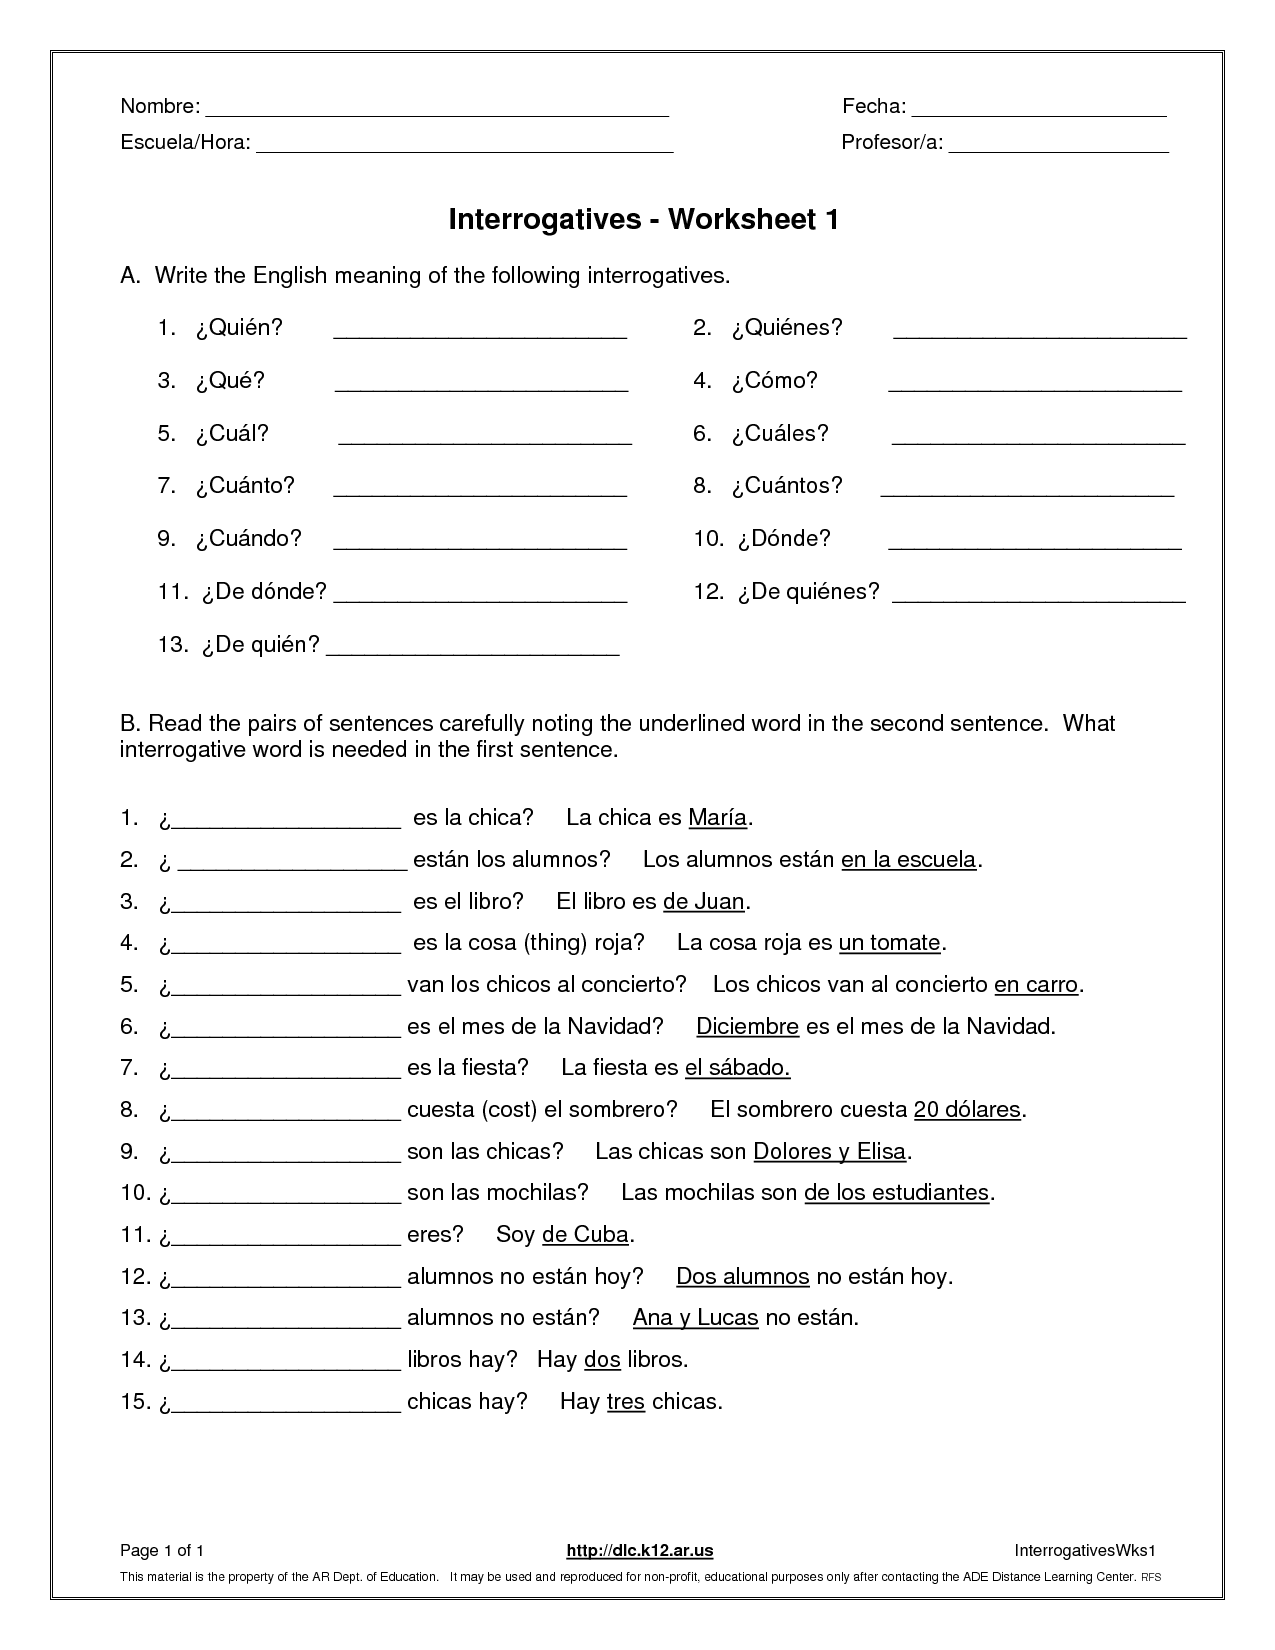 16 Best Images Of Current Events Worksheet